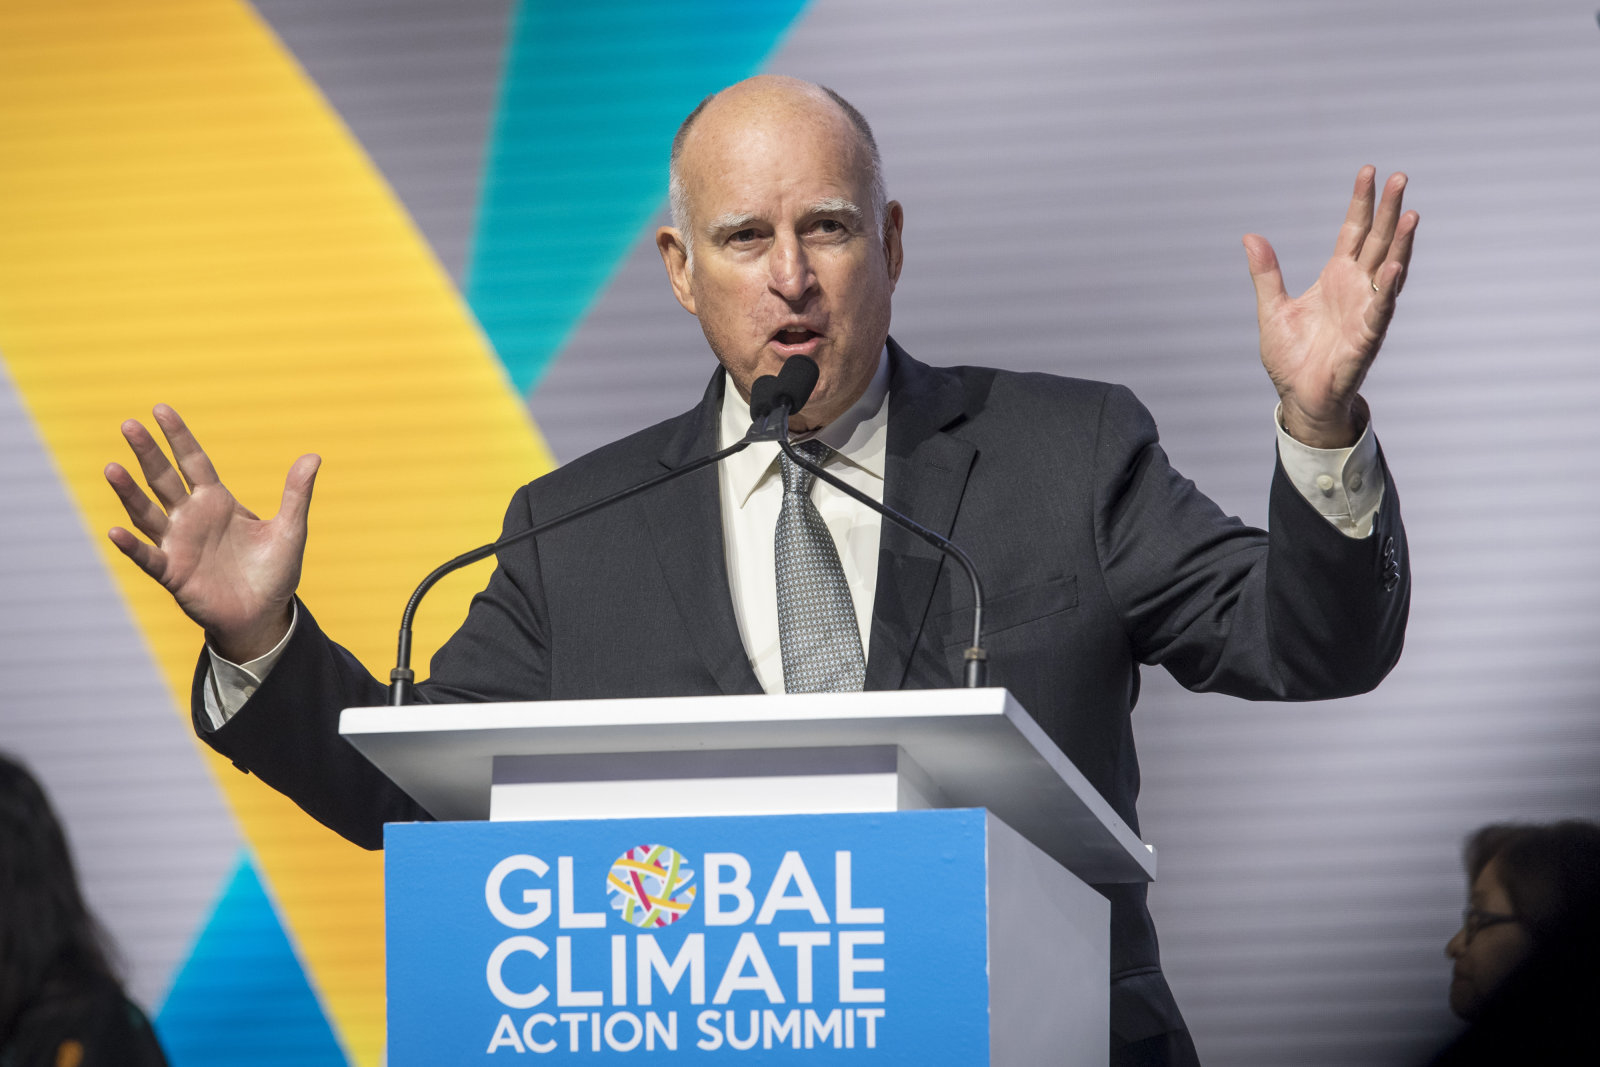 Jerry Brown, governor of California, speaks during the Global Climate Action Summit in San Francisco, California, U.S., on Friday, Sept. 14, 2018. The Global Climate Action Summit brings together industry and political leaders working on improving the conditions and concerns facing climate in the world today. Photographer: David Paul Morris/Bloomberg via Getty Images